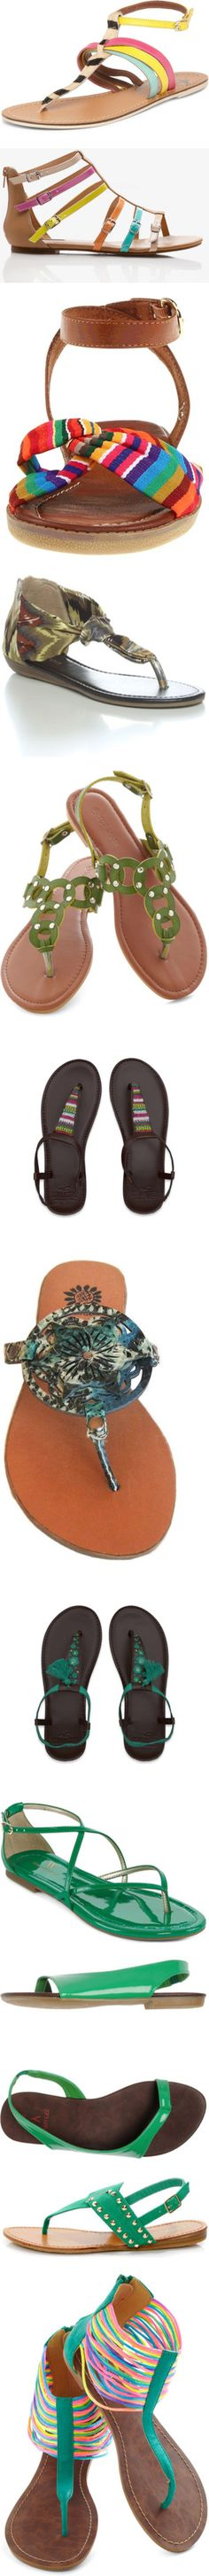 """100 flat sandals under $50/£30 IN COLOR!"" by dana-forlano on Polyvore"